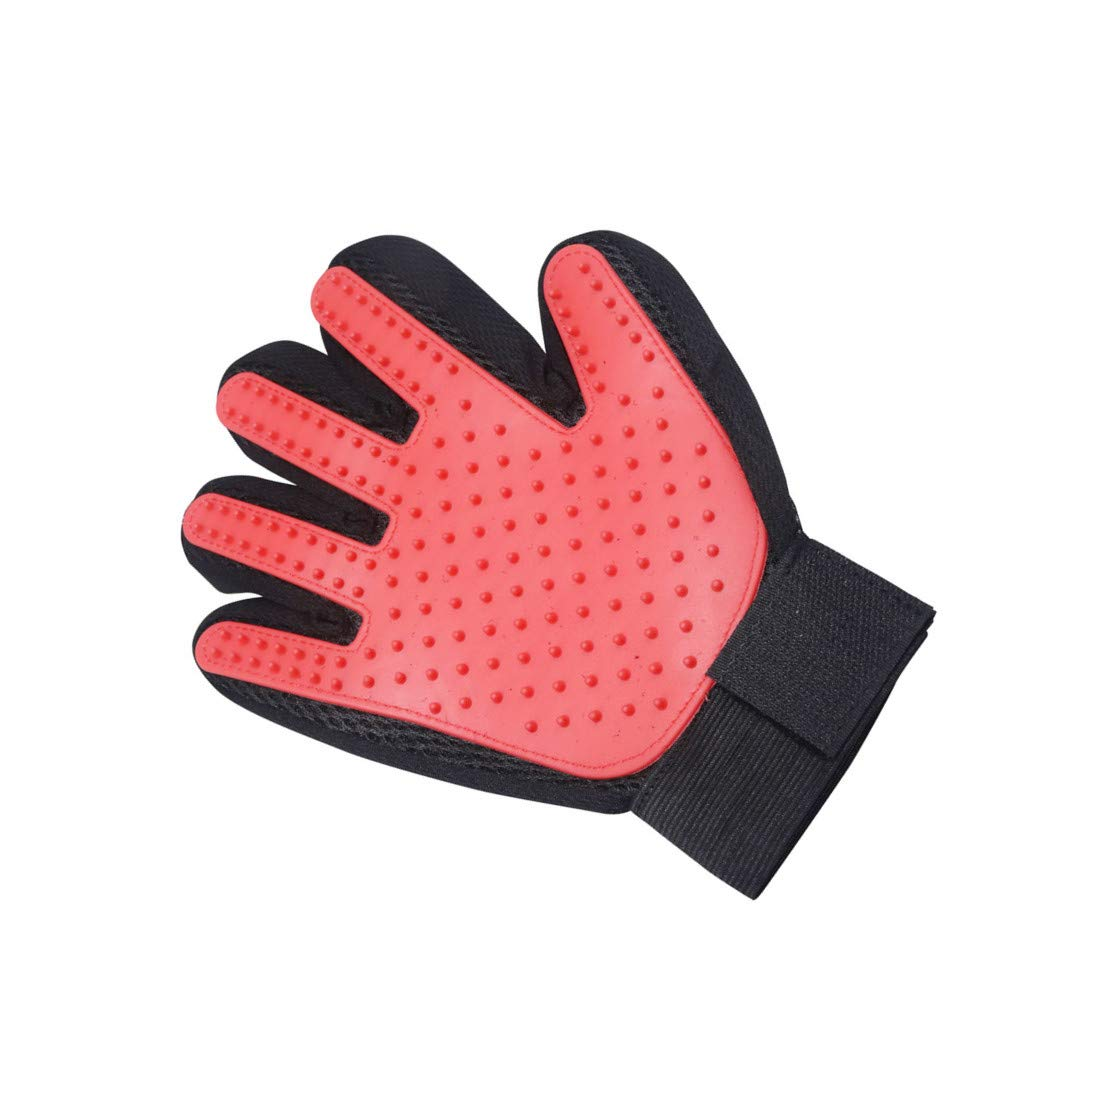 tianluo Pet Supplies Gloves Animal Cat Dog Sheep Sheep Pet Massage Gloves Hair Cleaning Care Tools by tianluo